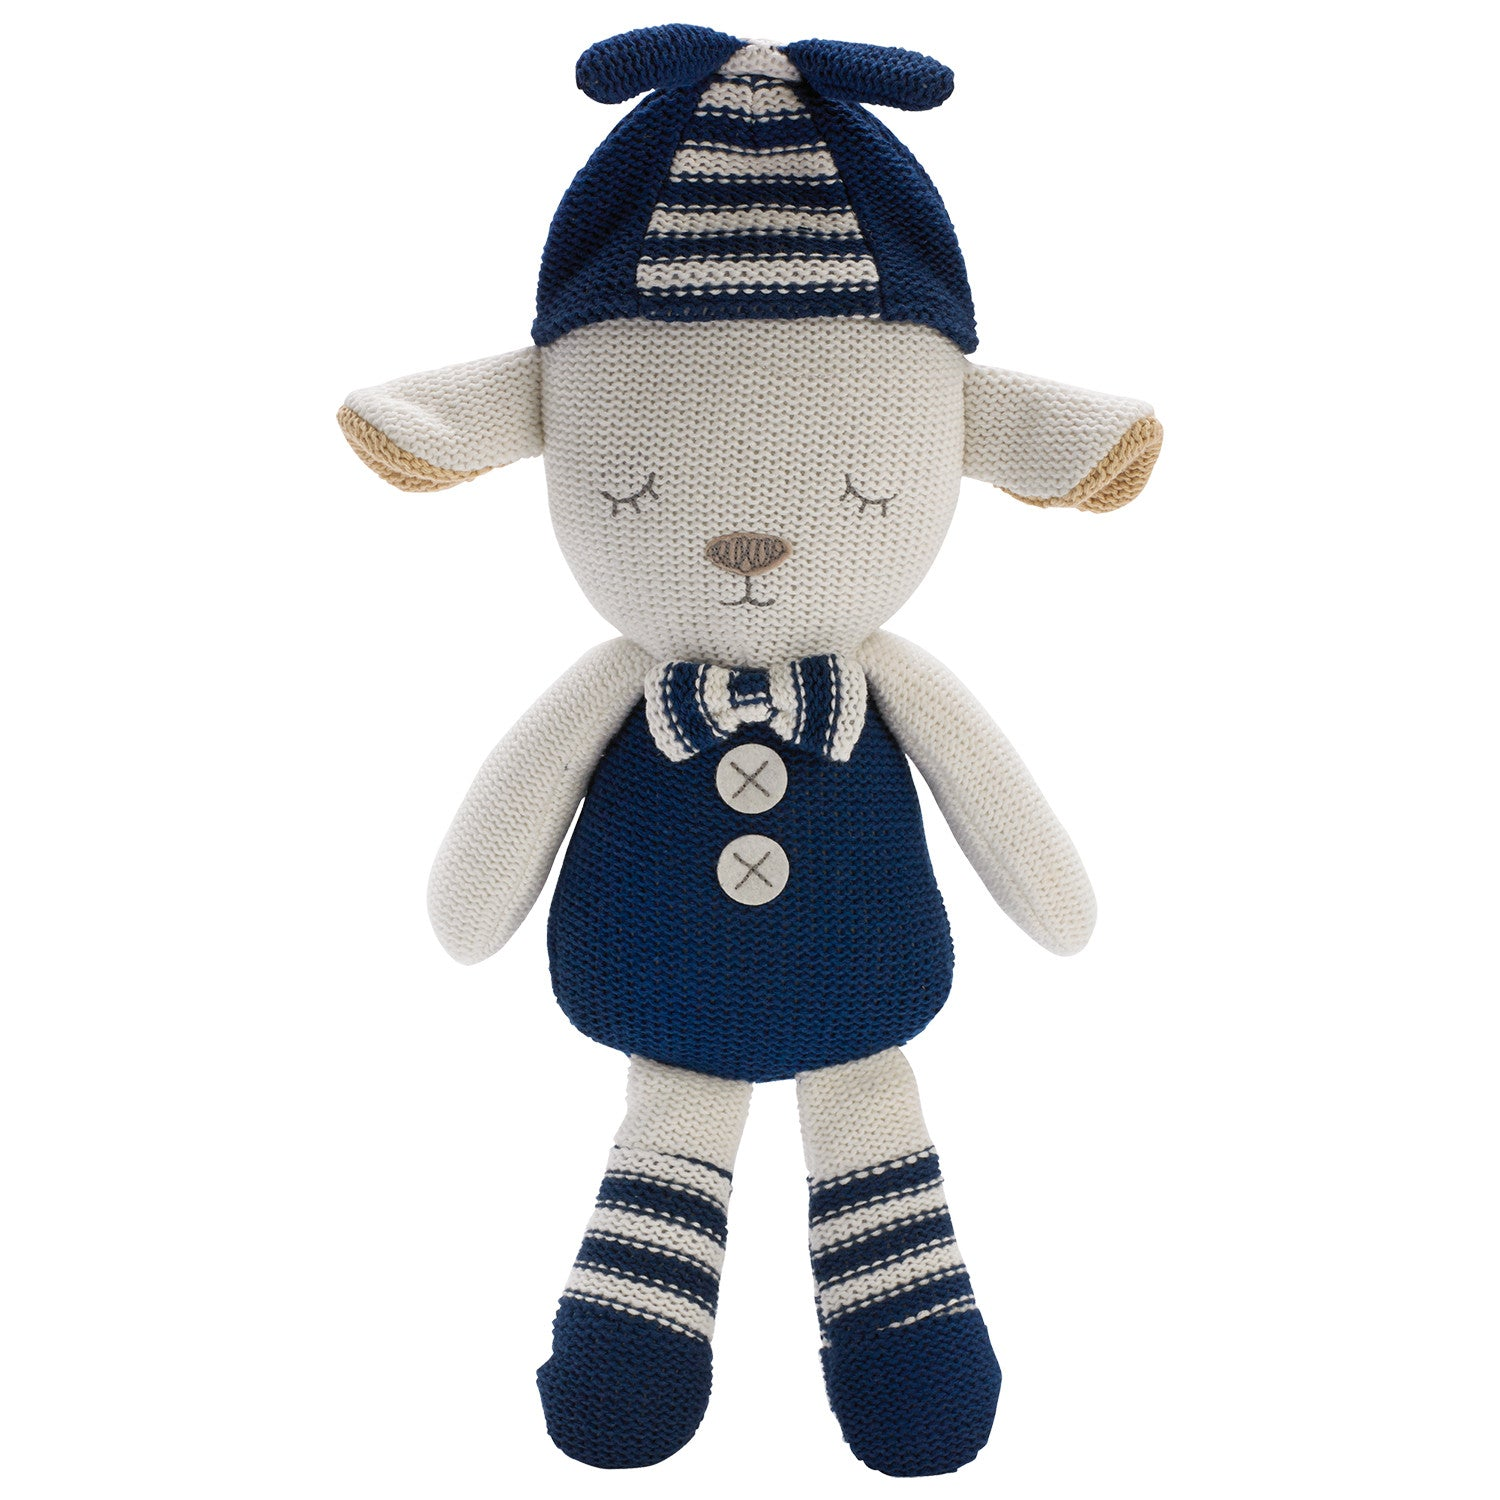 Plush Toy - Navy Grayson Lamb - Living Textiles Co.